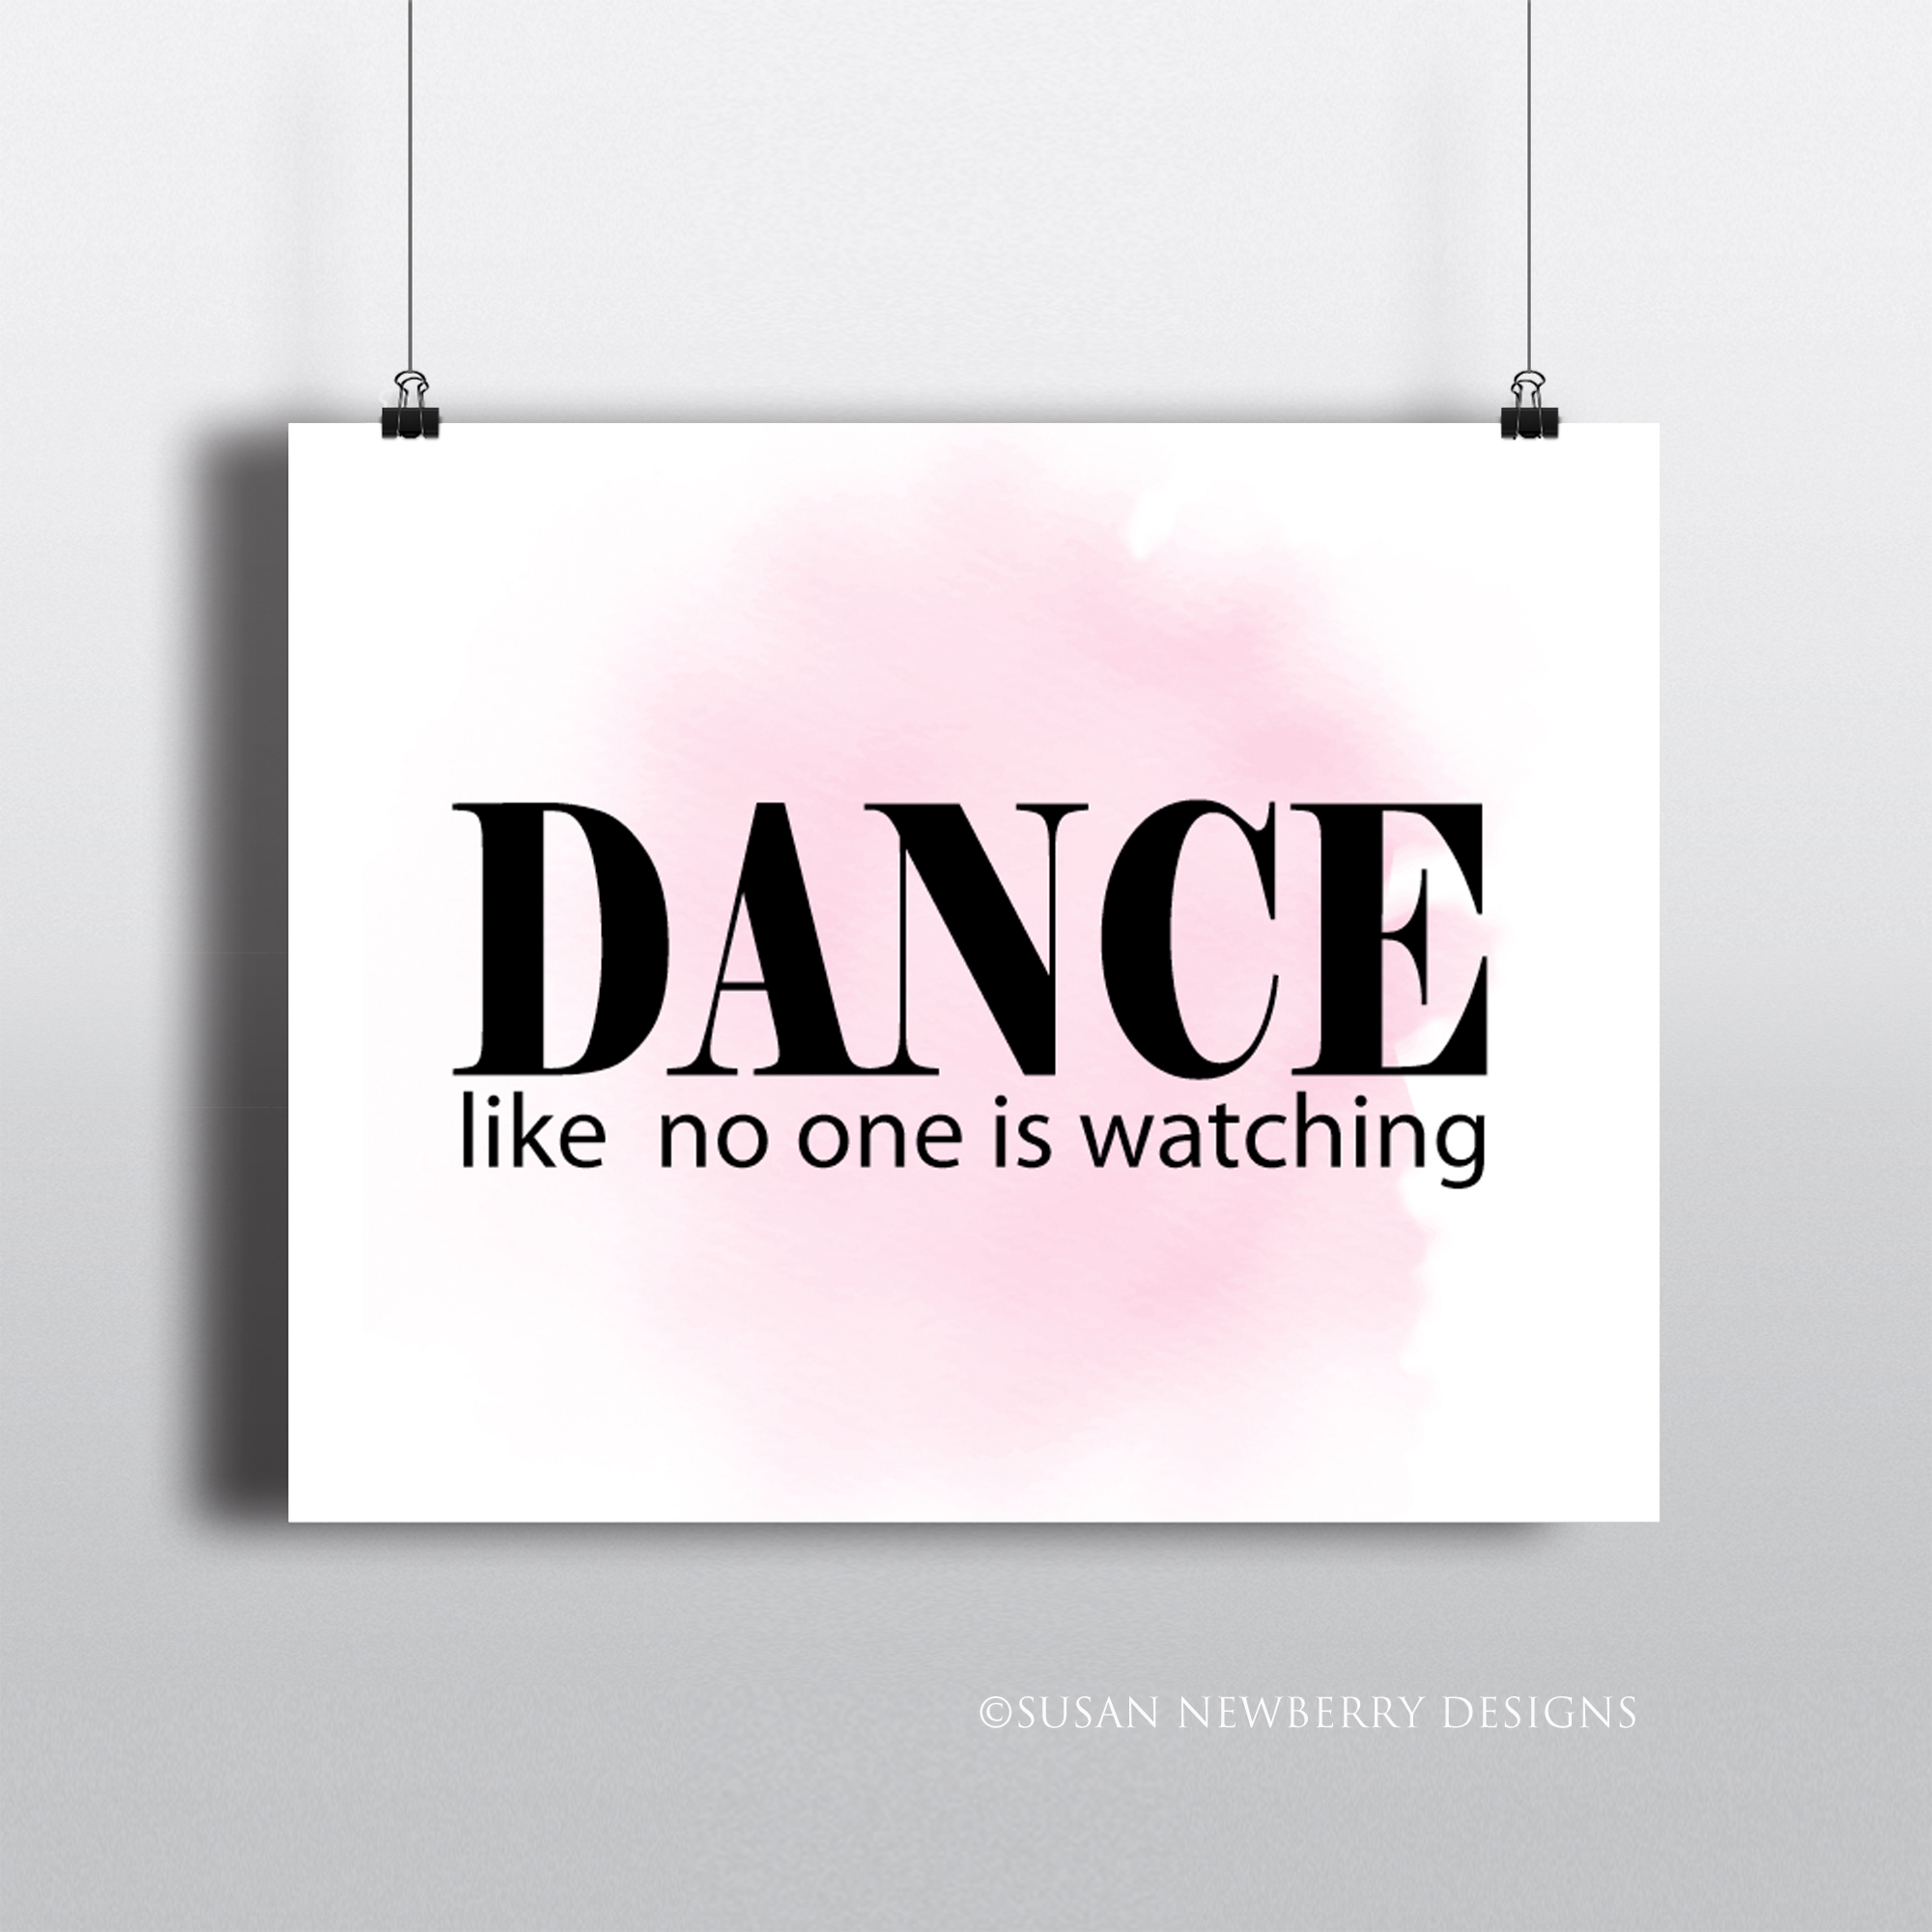 Dance-like-no-one-is-watching-2.jpg